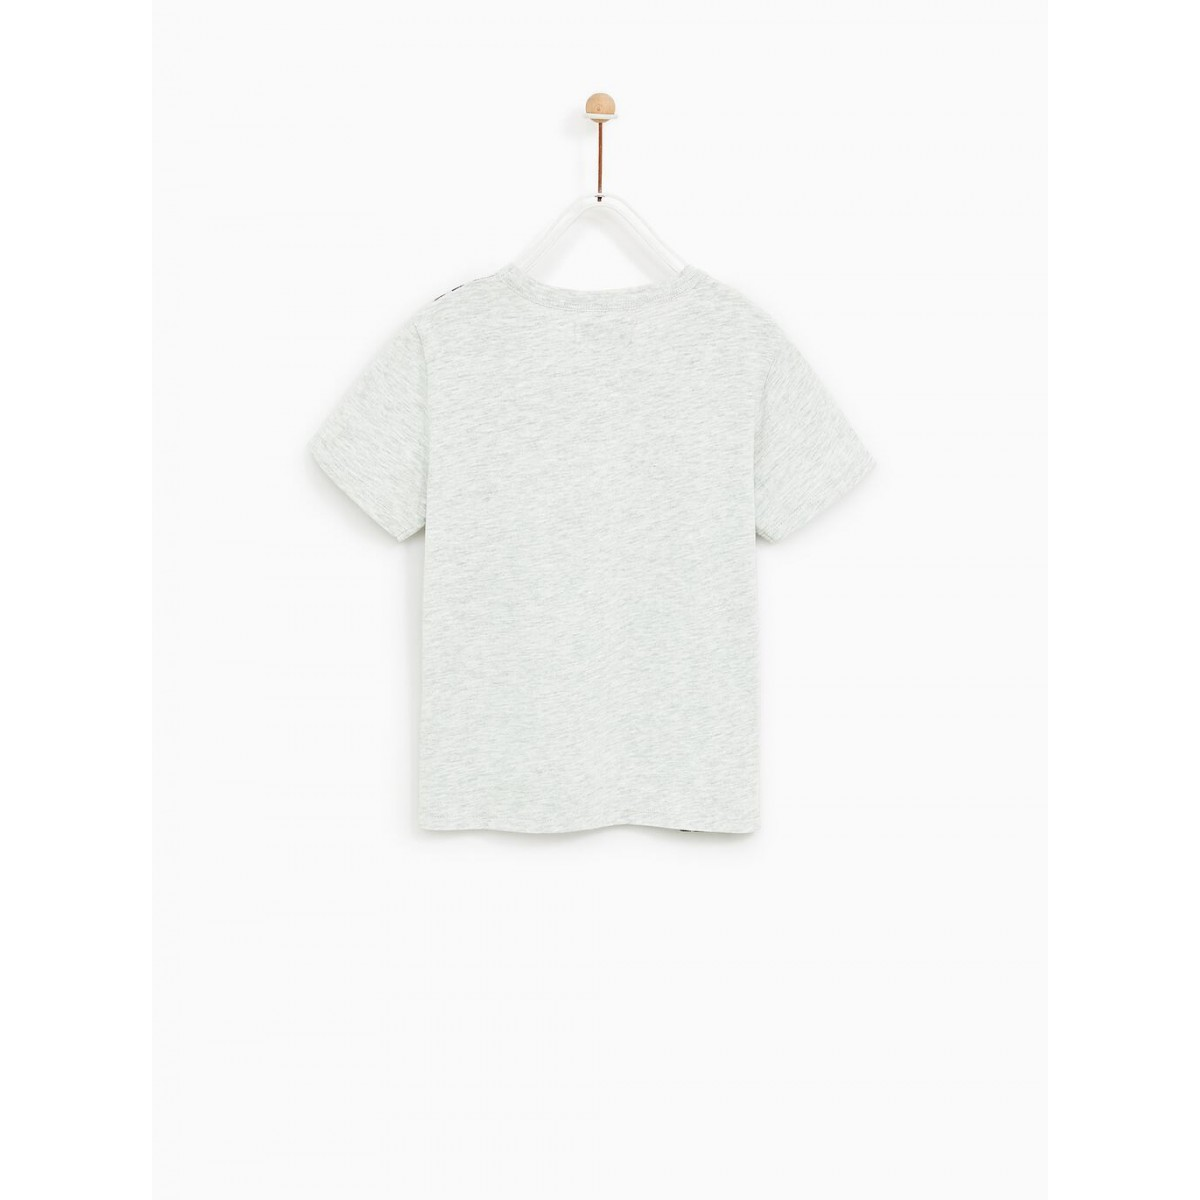 Zara London T-Shirt